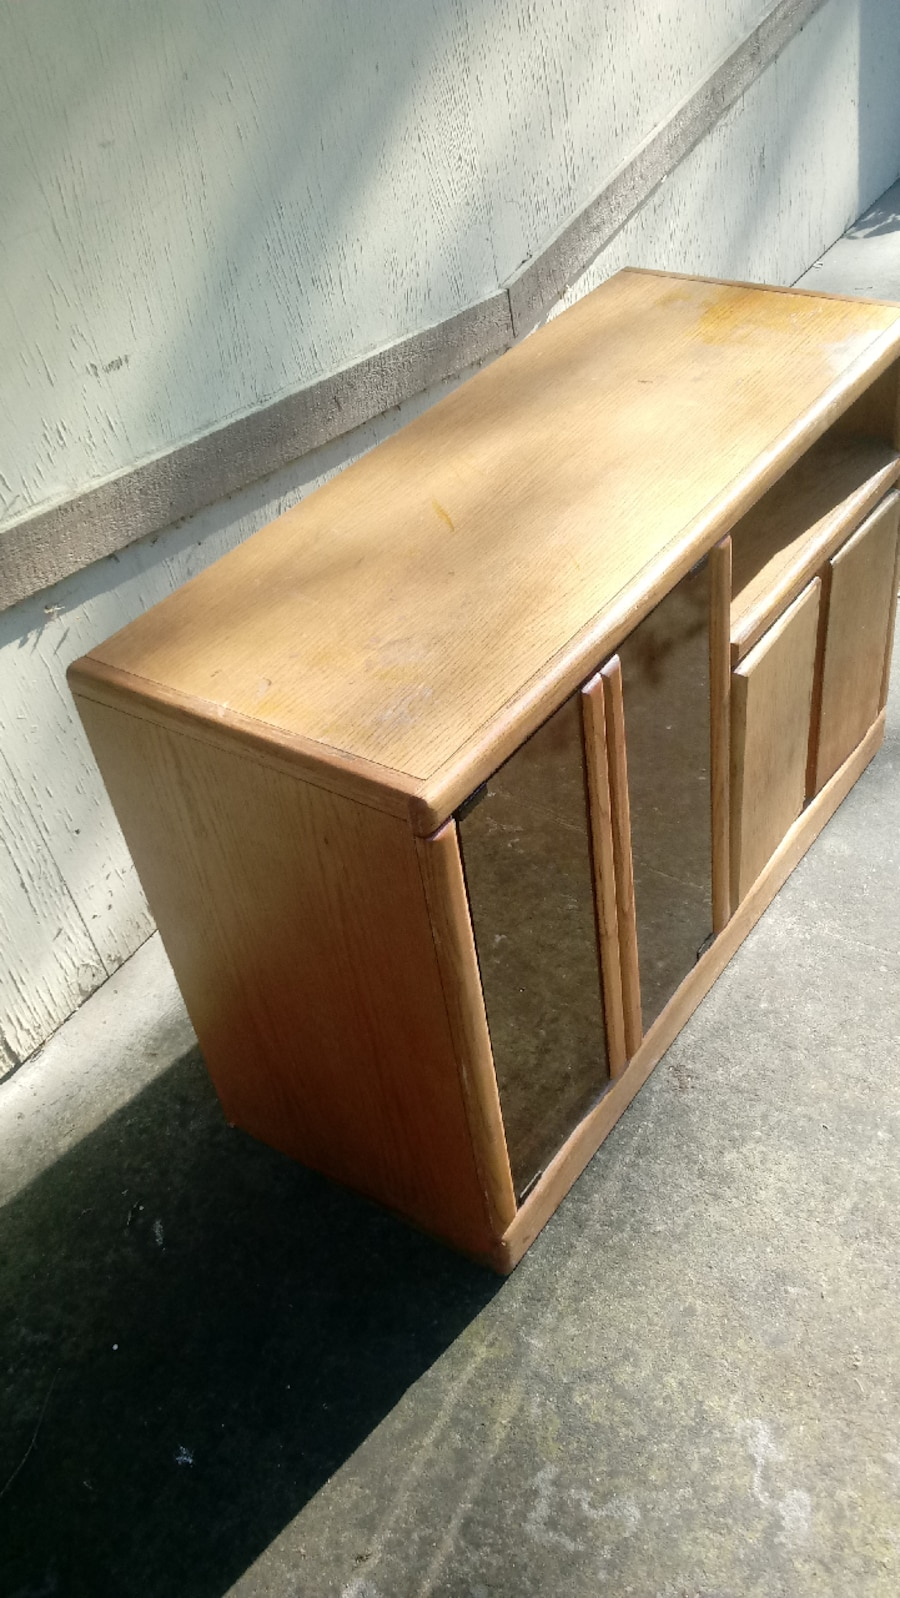 Wood cabinet glass table computer desk cd case - Fruitridge